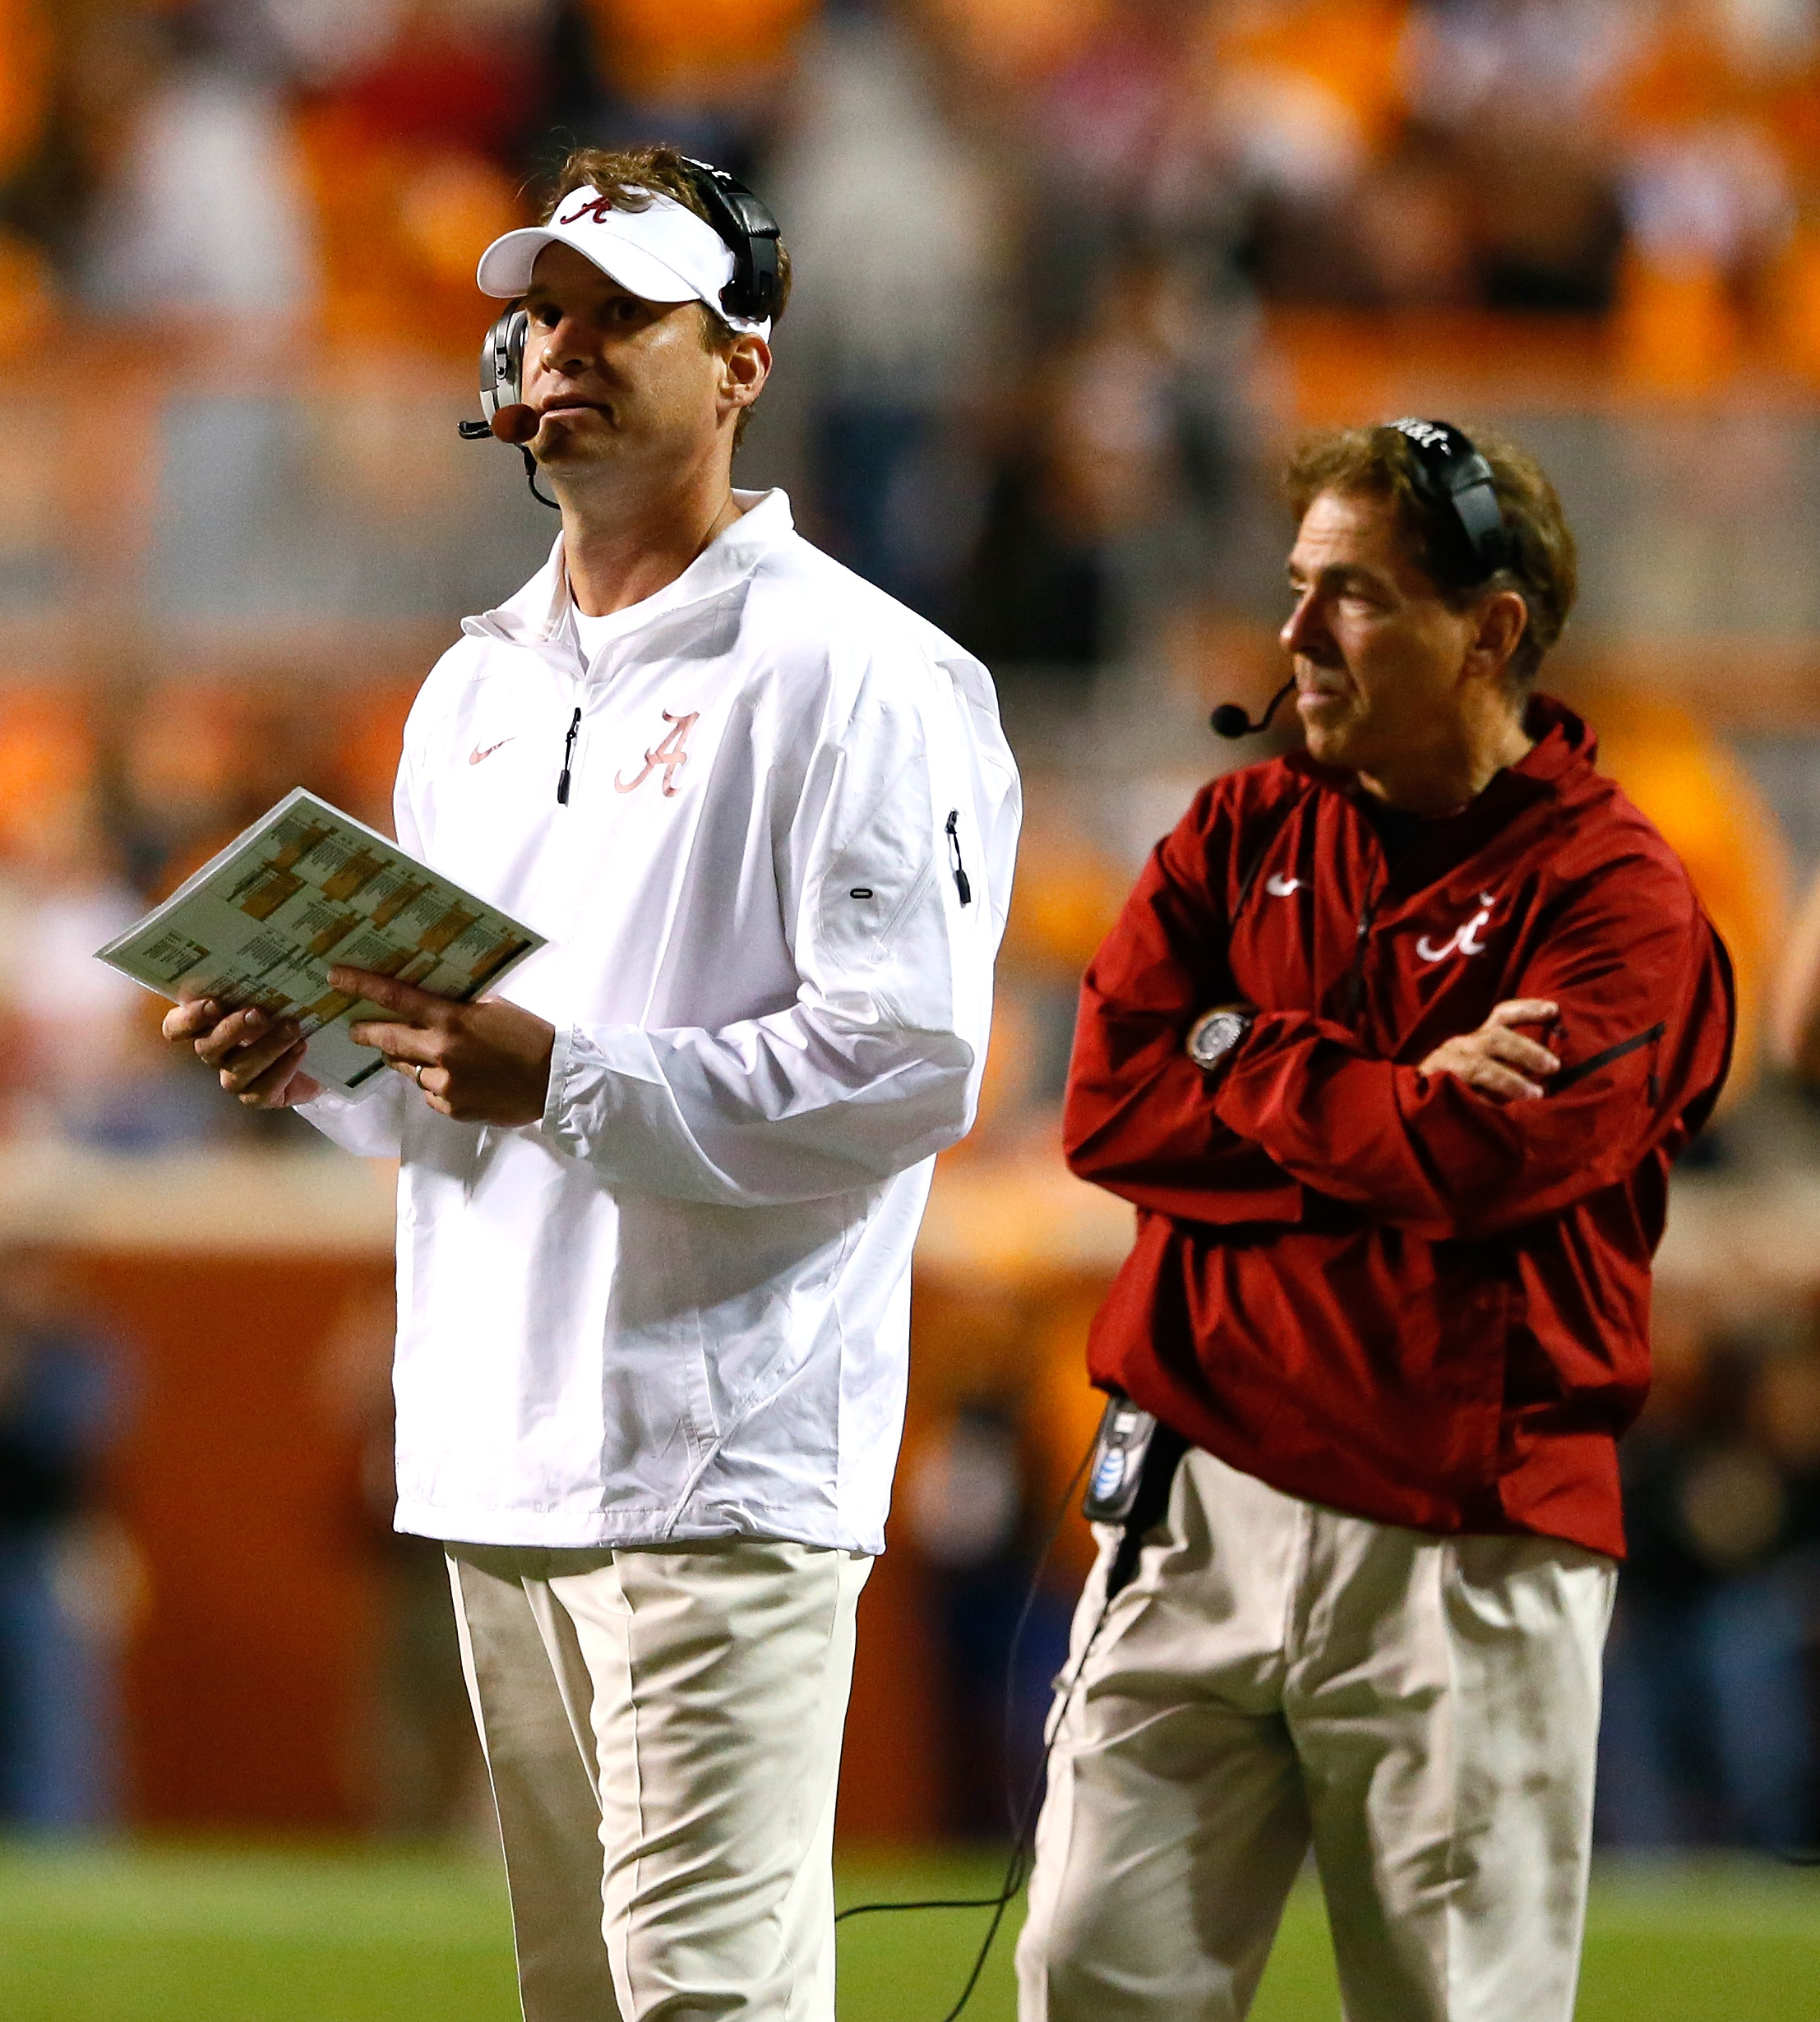 Lane Kiffin makes fun of uproar over Ohio State's game plan against Michigan State